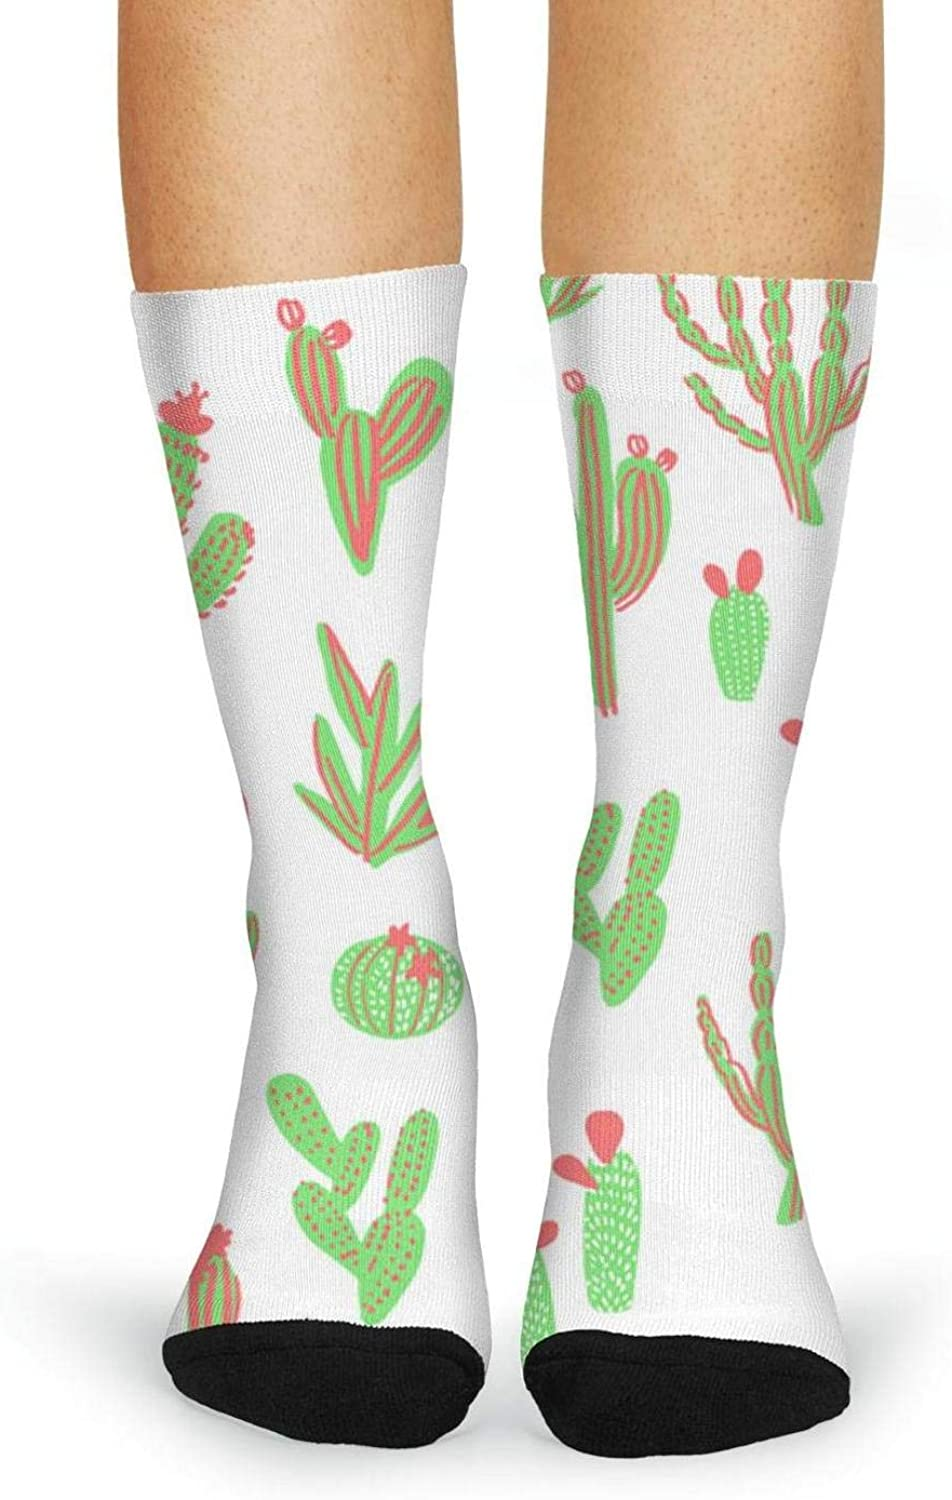 XIdan-die Womens Over-the-Calf Tube Socks Cactus Wallpaper Backgrounds Moisture Wicking Casual Socks